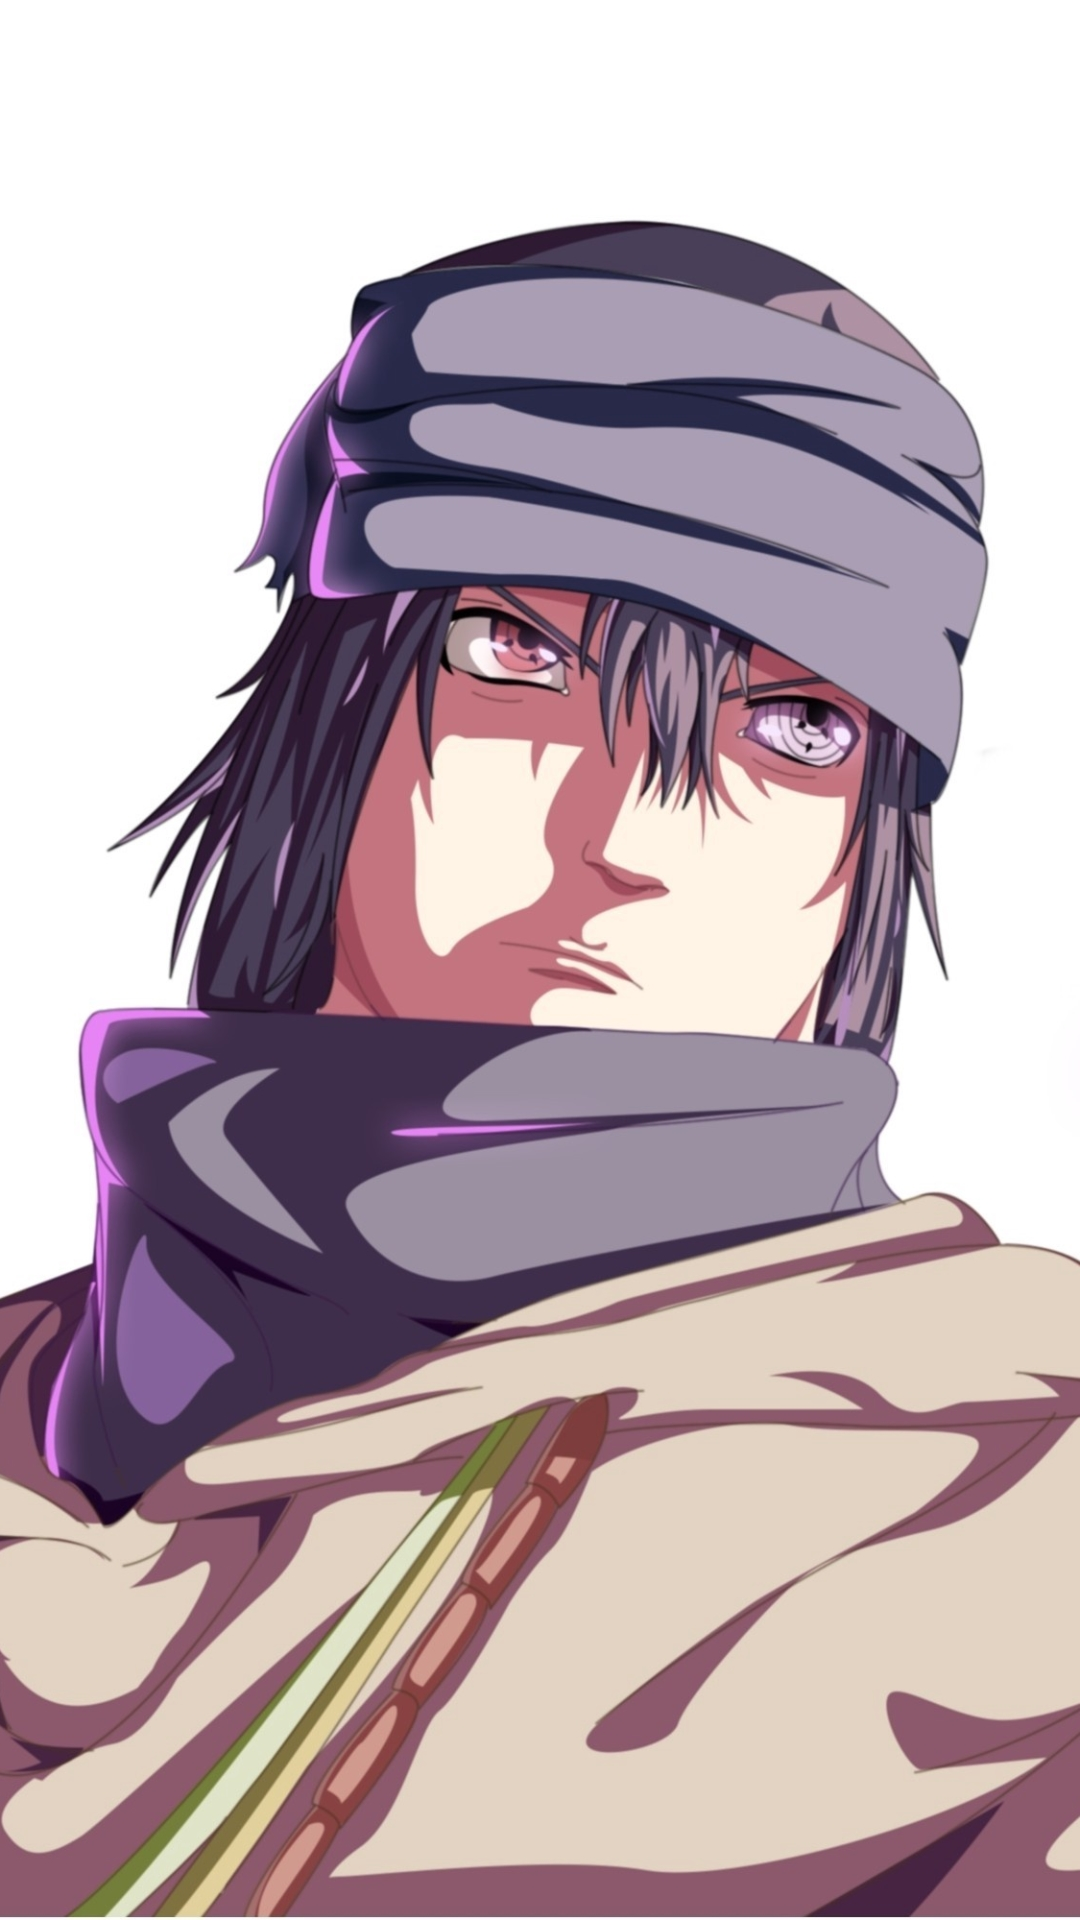 257 Sasuke Uchiha Apple Iphone 5 640x1136 Wallpapers Mobile Abyss